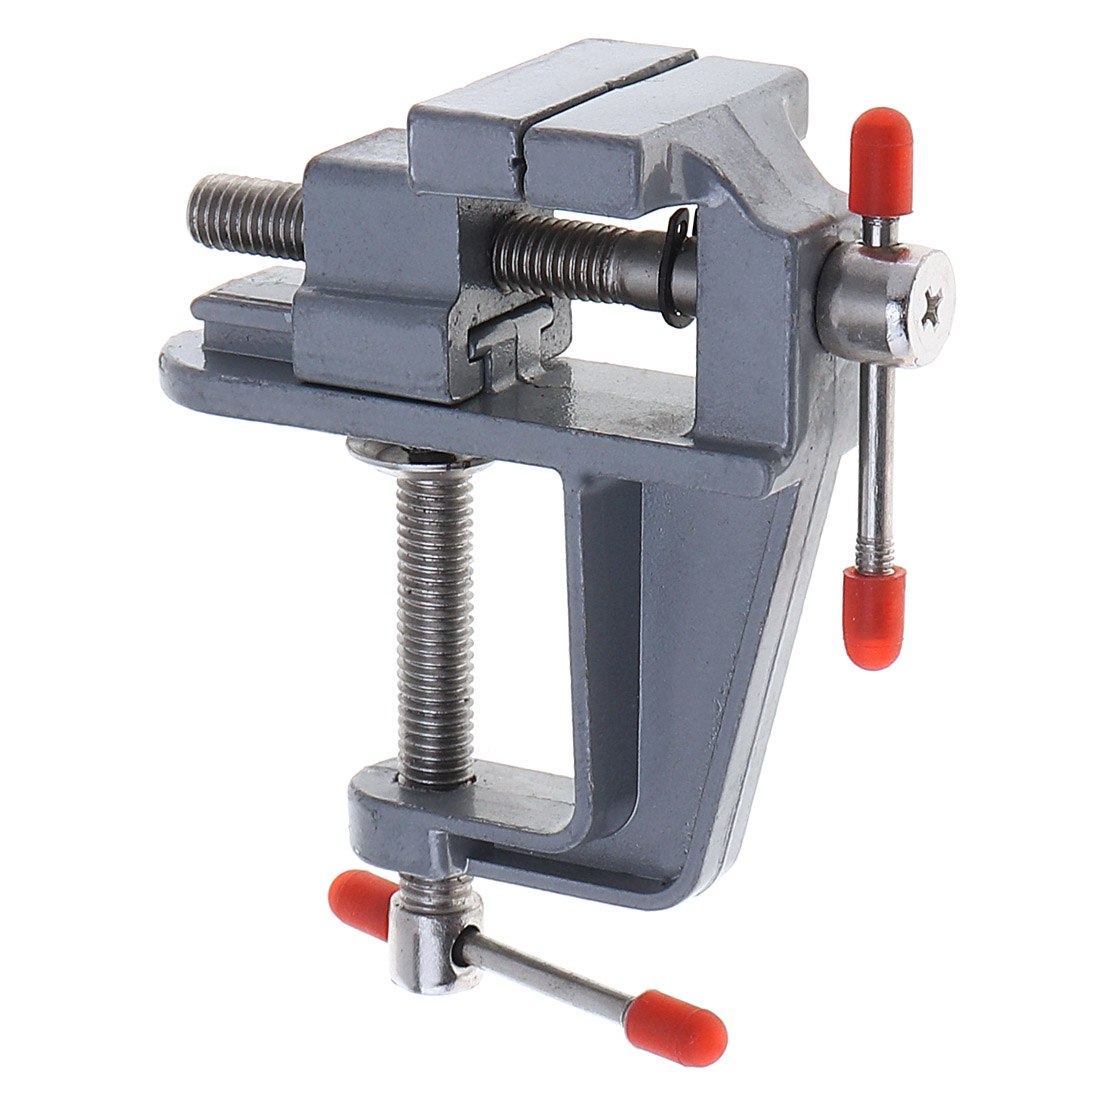 Terrific Us 2 91 26 Off Mini Aluminum Alloy Diy Jaw Bench Clamp Drill Press Vice Micro Clip For Clamping Table Water Pump In Power Tool Accessories From Gmtry Best Dining Table And Chair Ideas Images Gmtryco